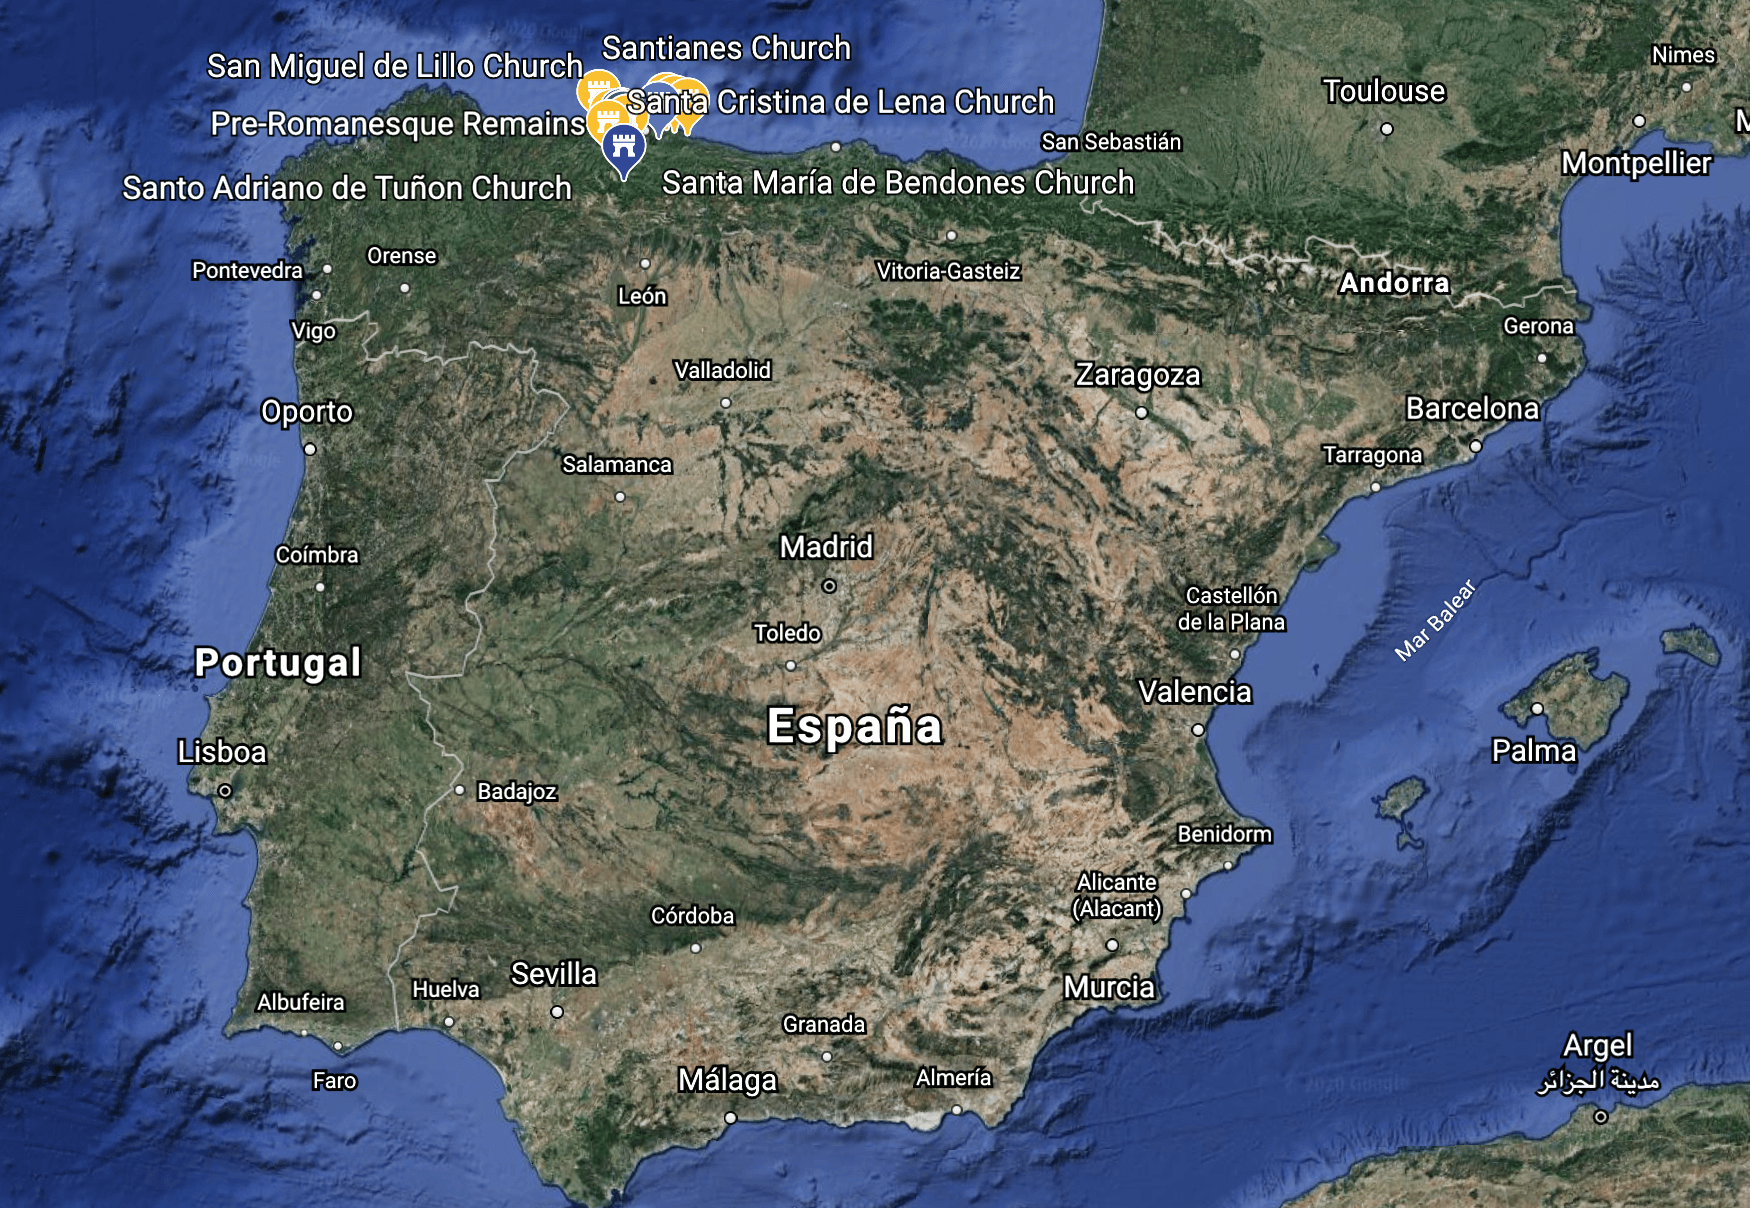 Map of the Iberian Peninsula with the pre-Romanesque buildings marked